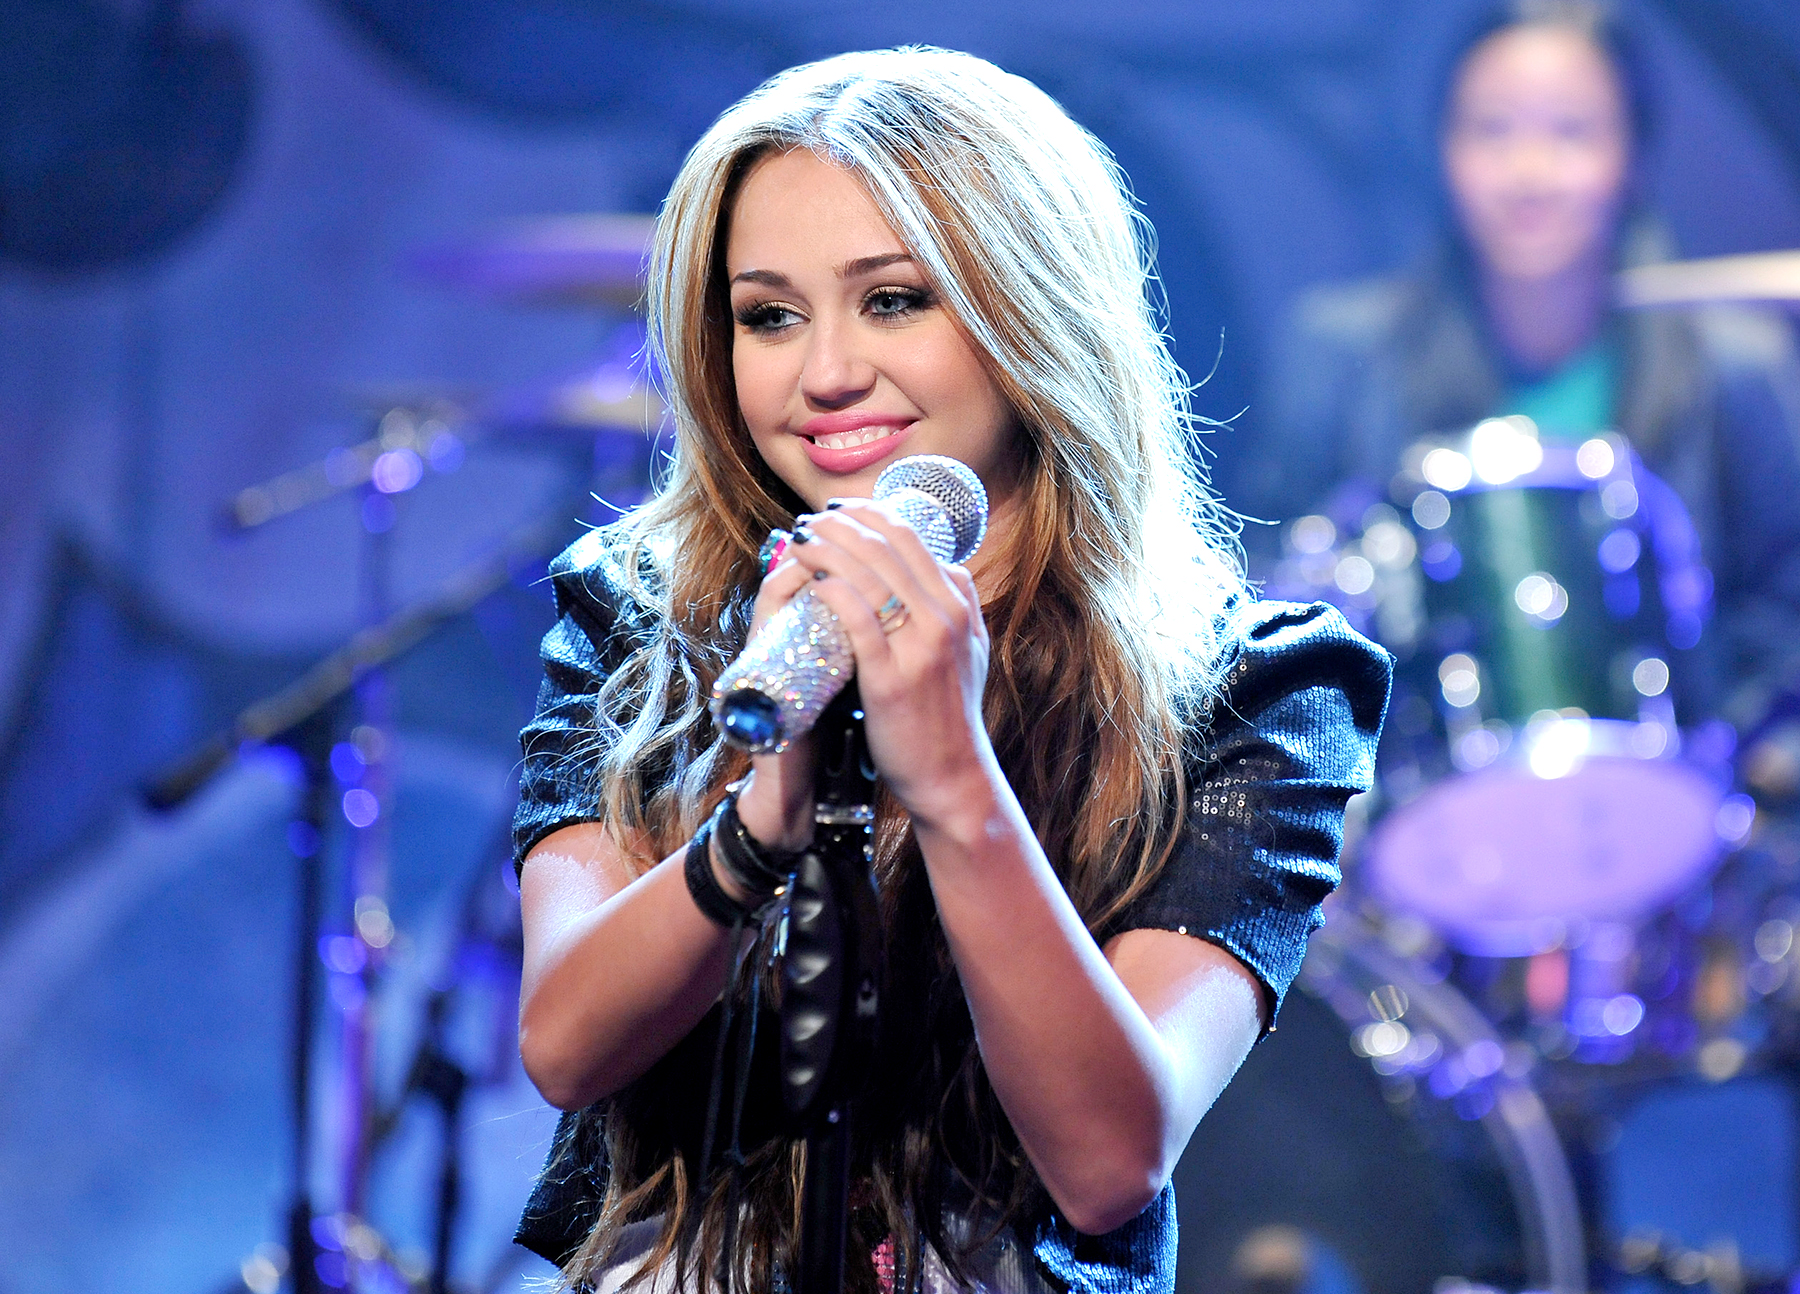 miley-cyrus-2010-leaves-hannah-montana - In 2010, Cyrus bid farewell to her blonde Hannah Montana wig and moved on from the role that launched her career.